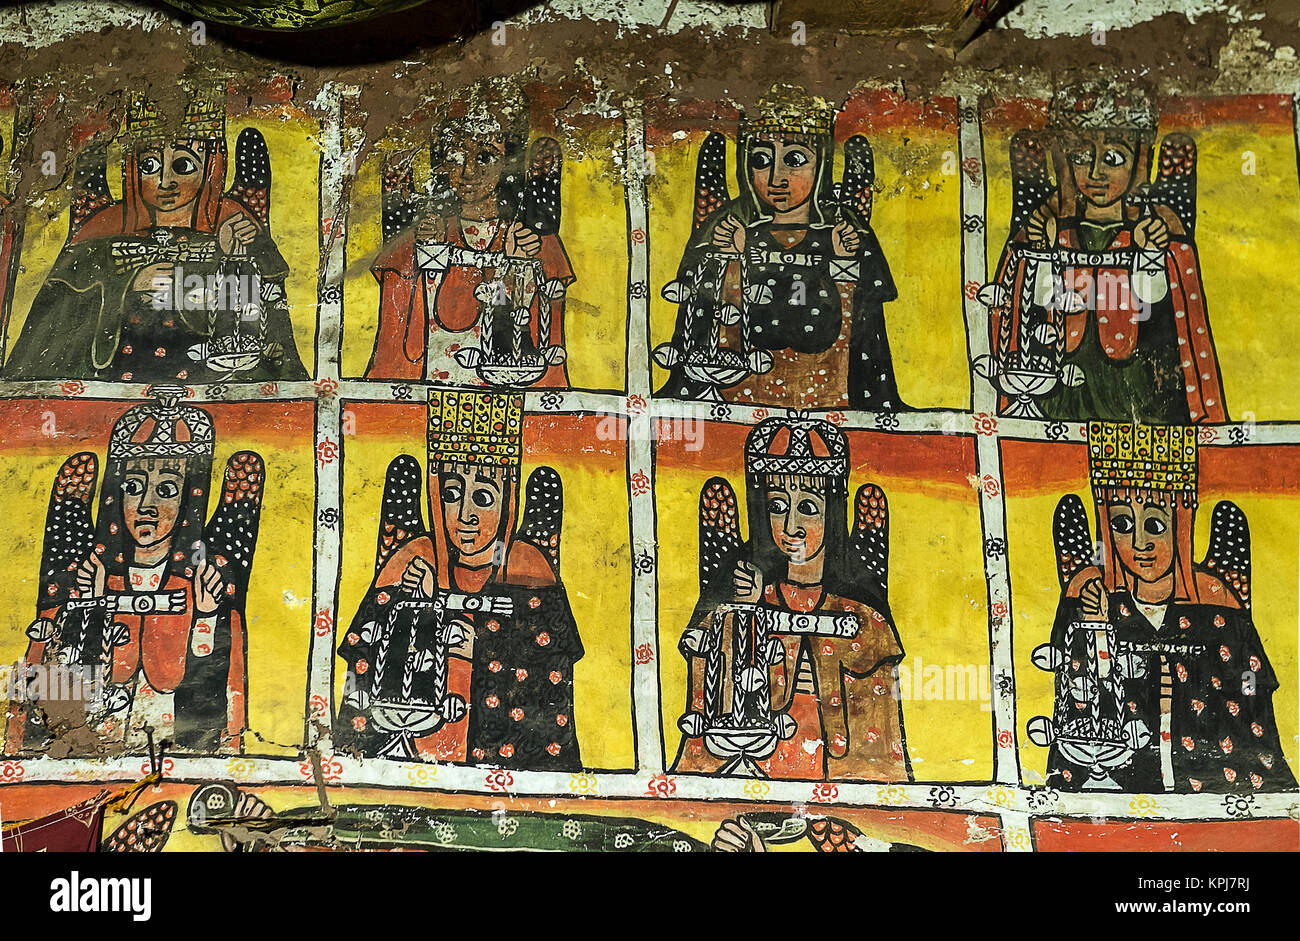 Fresco, Eight of the twenty-four elders of the Apocalypse, rock church Maryam Papaseyti, Gheralta, Tigray, Ethiopia - Stock Image